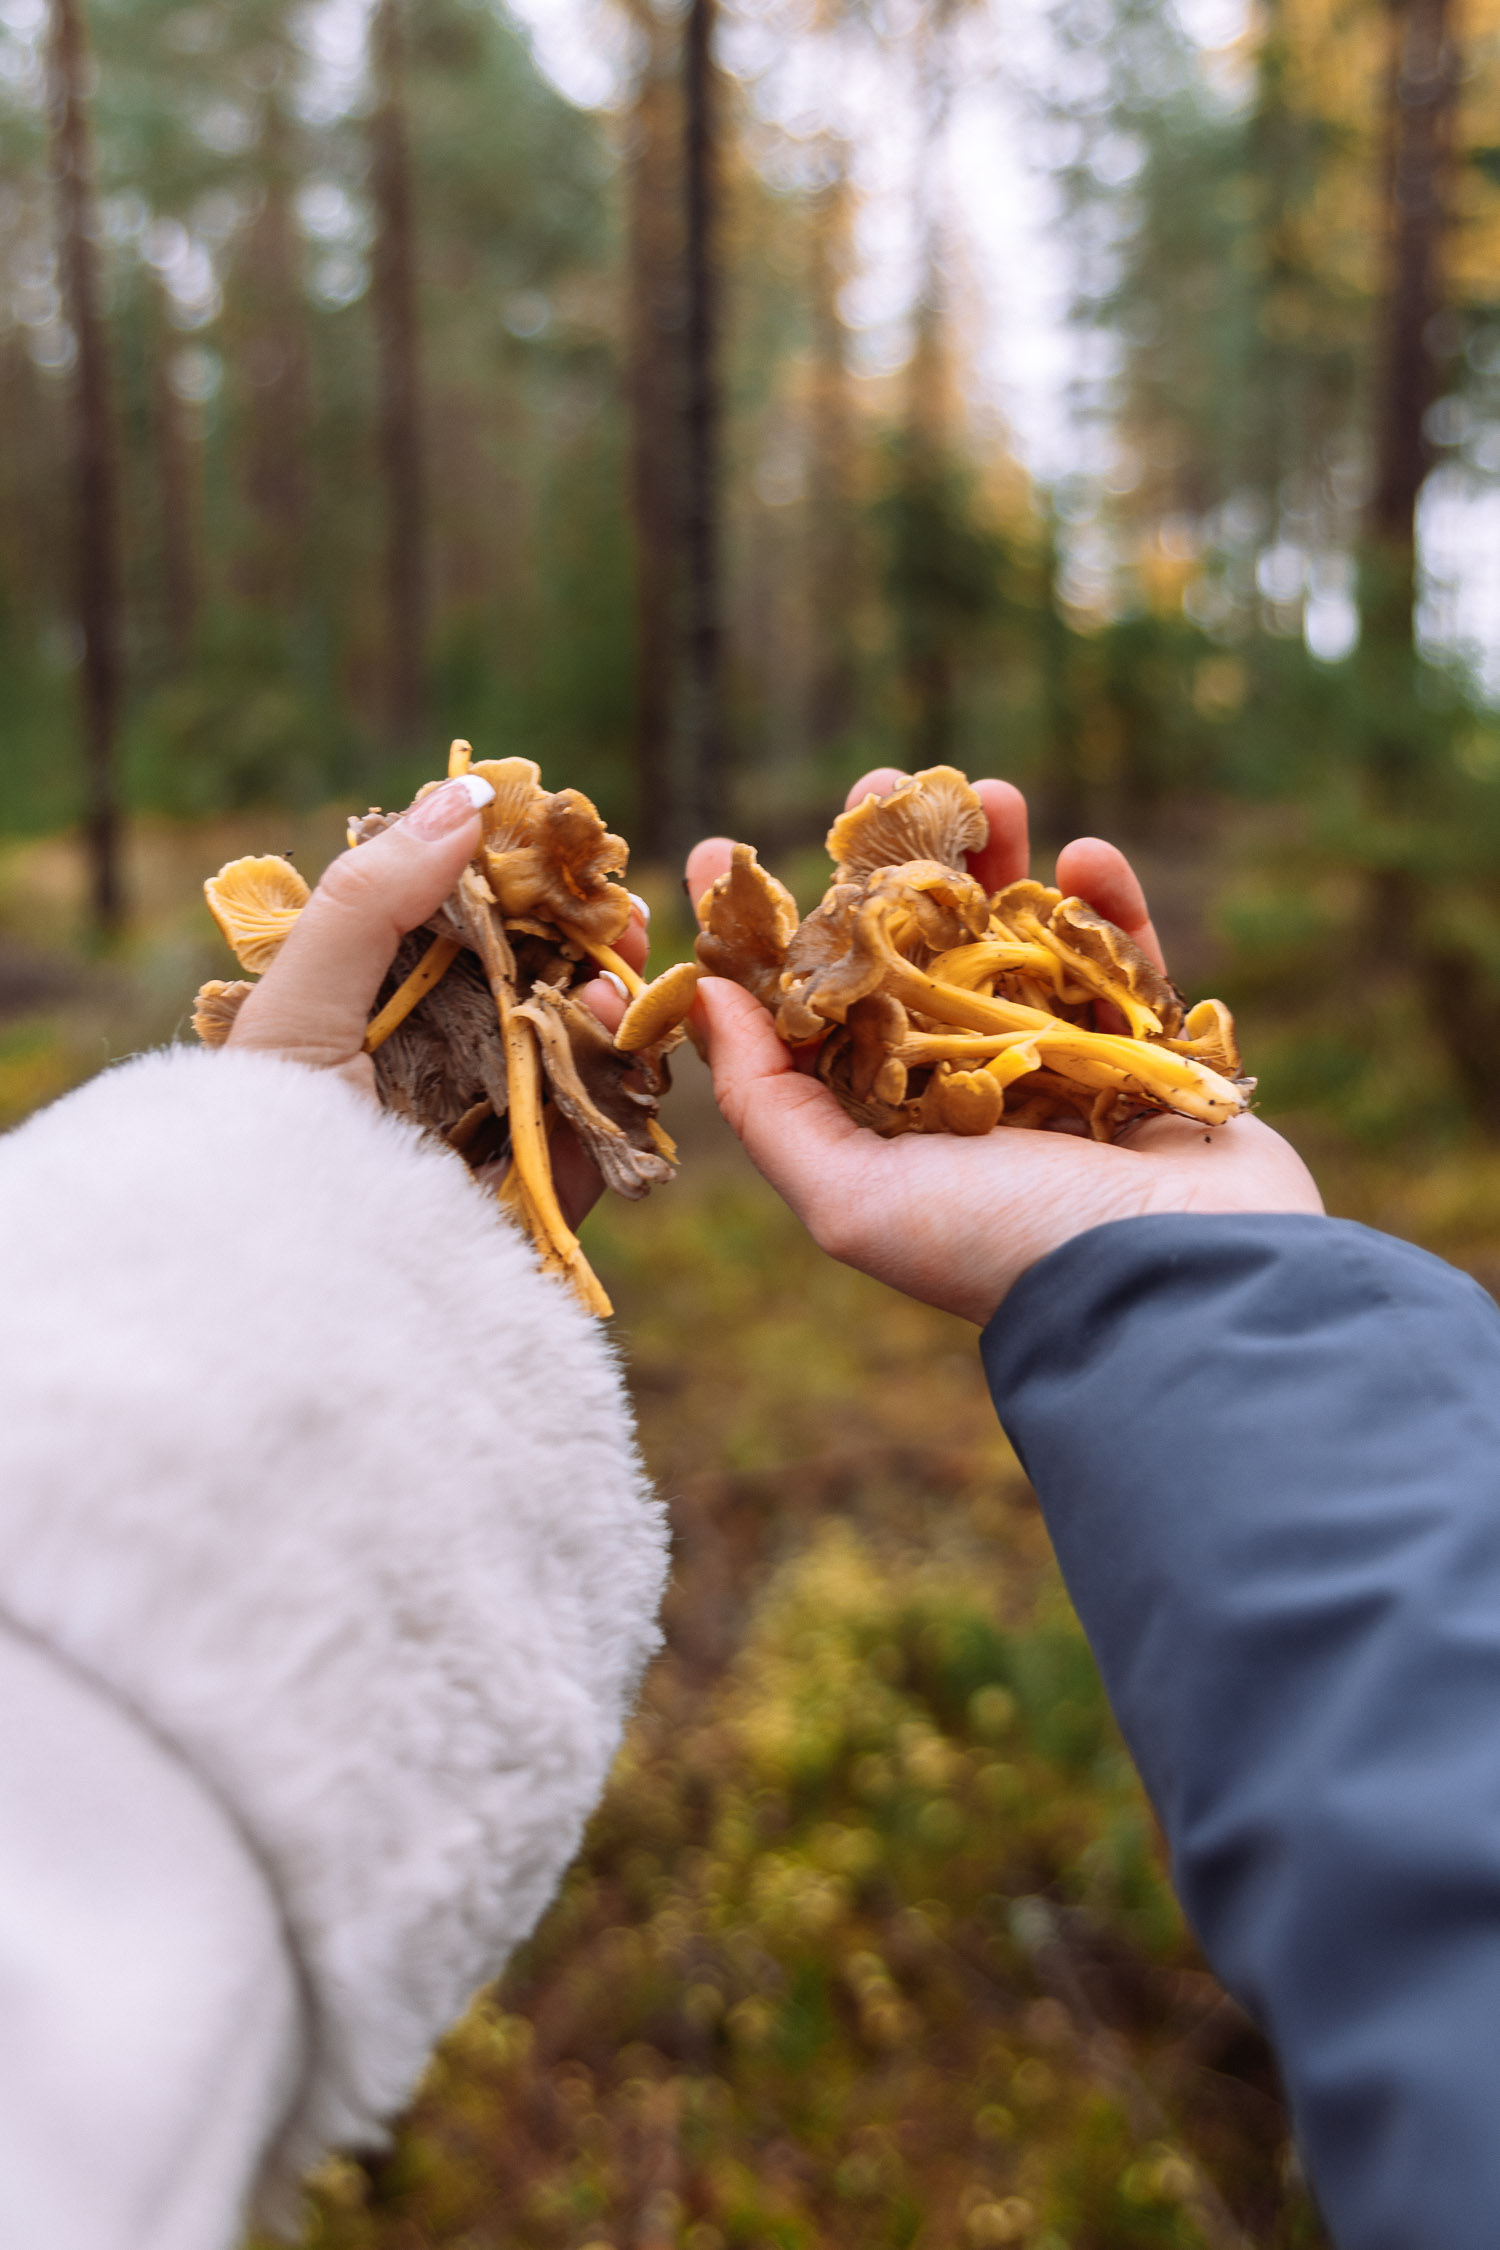 Fresh chanterelles picked in Brevens Bruks forest in Örebro.